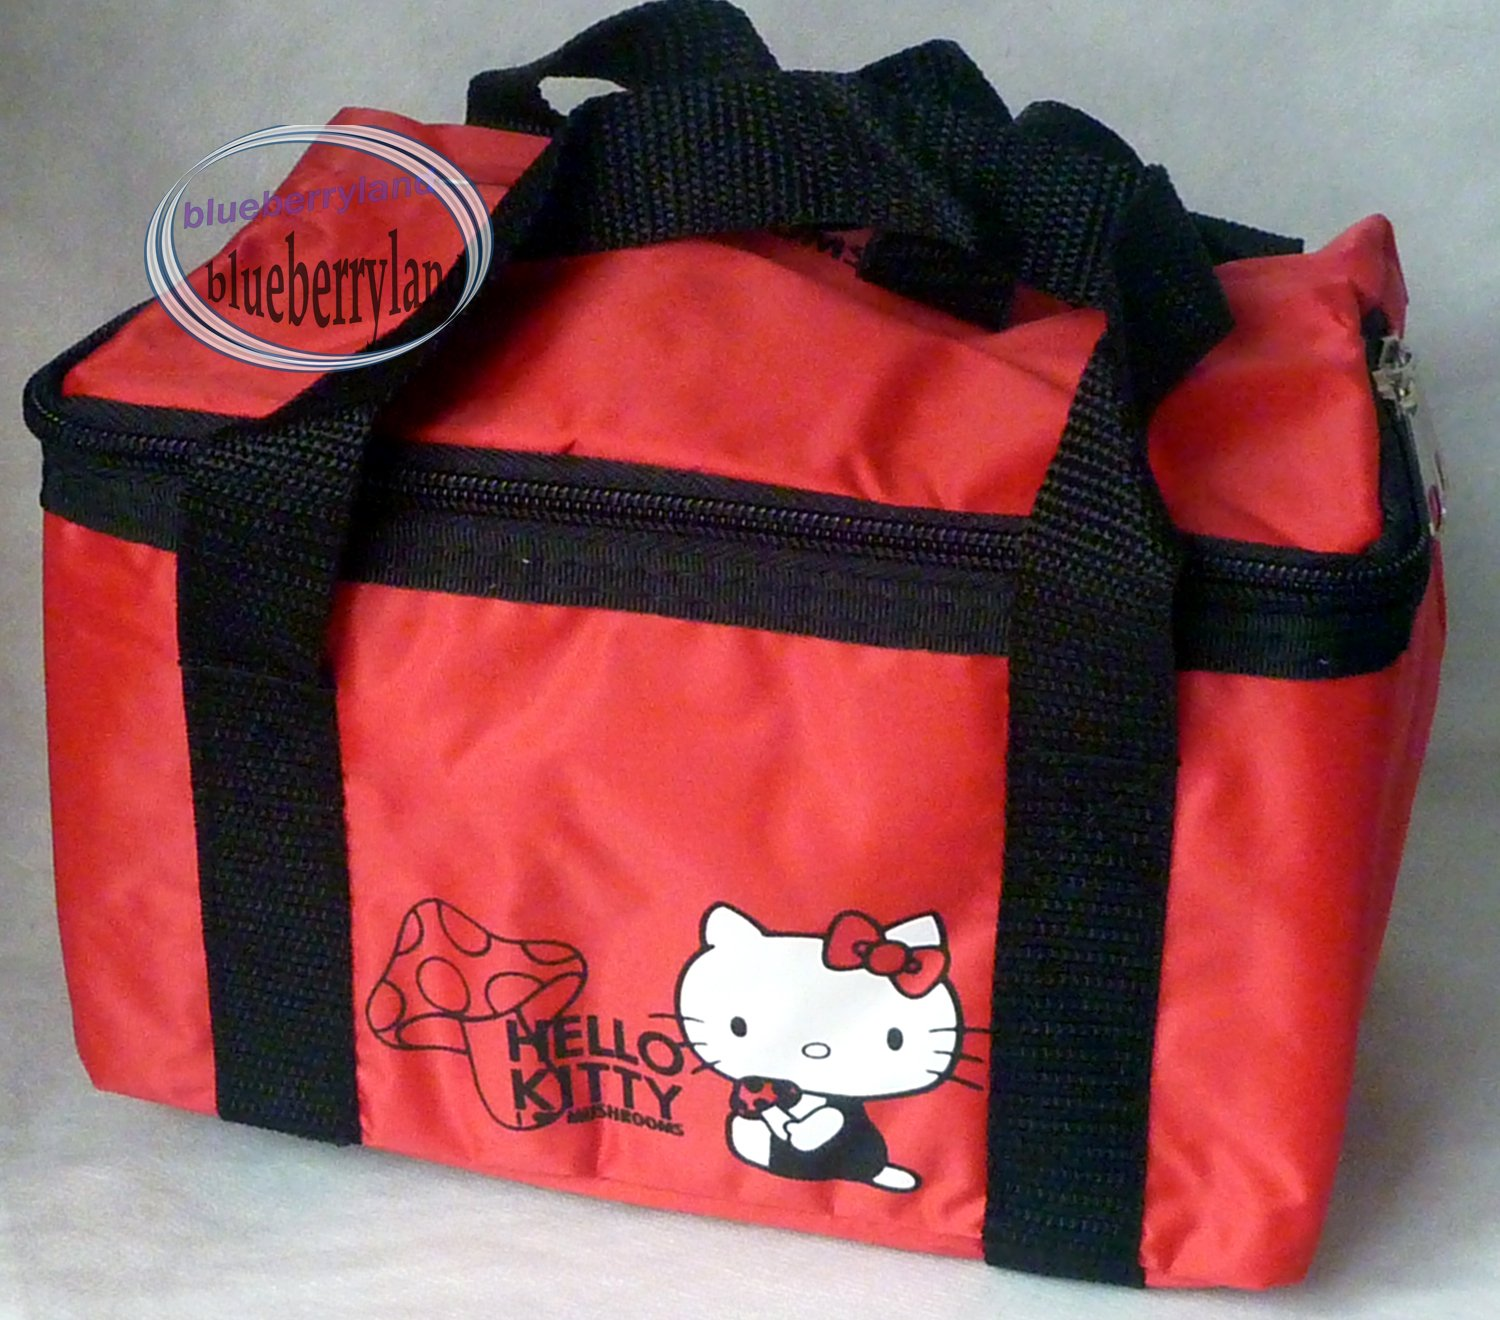 Sanrio Hello Kitty Insulated Cooler warmer BAG Bento Lunchbag Lunch Bag Red